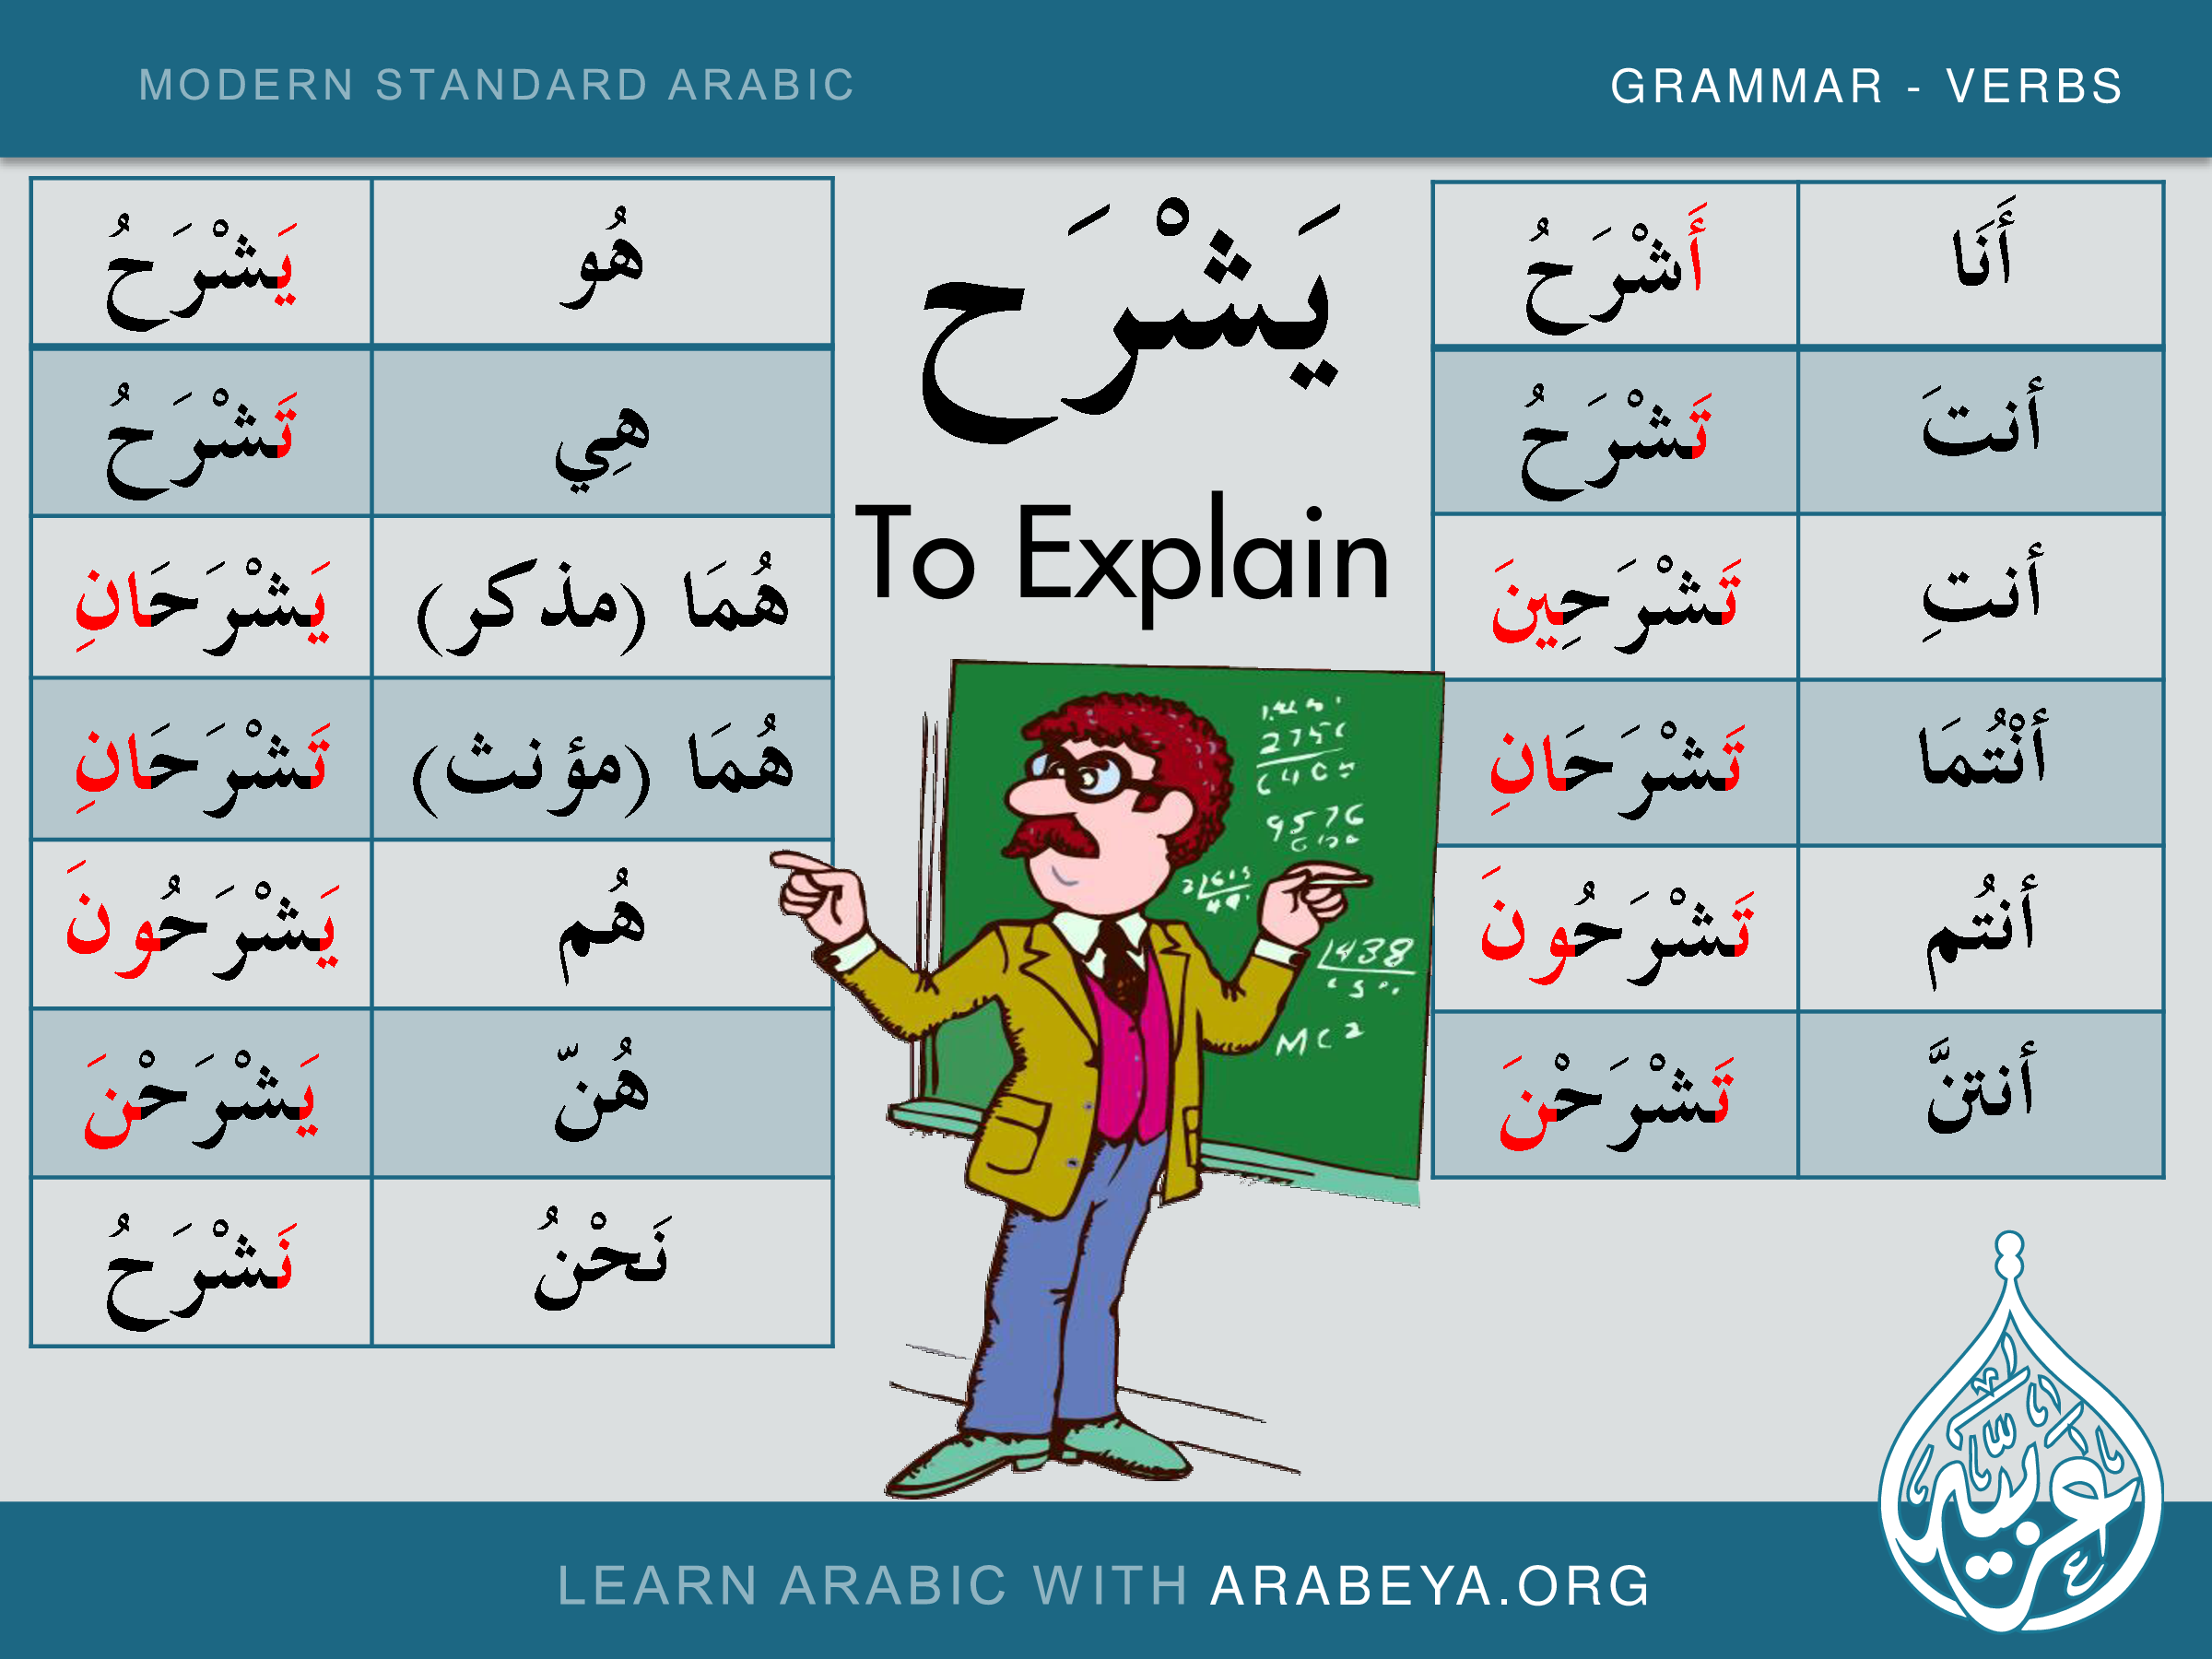 Pin On Learn New And Common Modern Standard Arabic Verbs